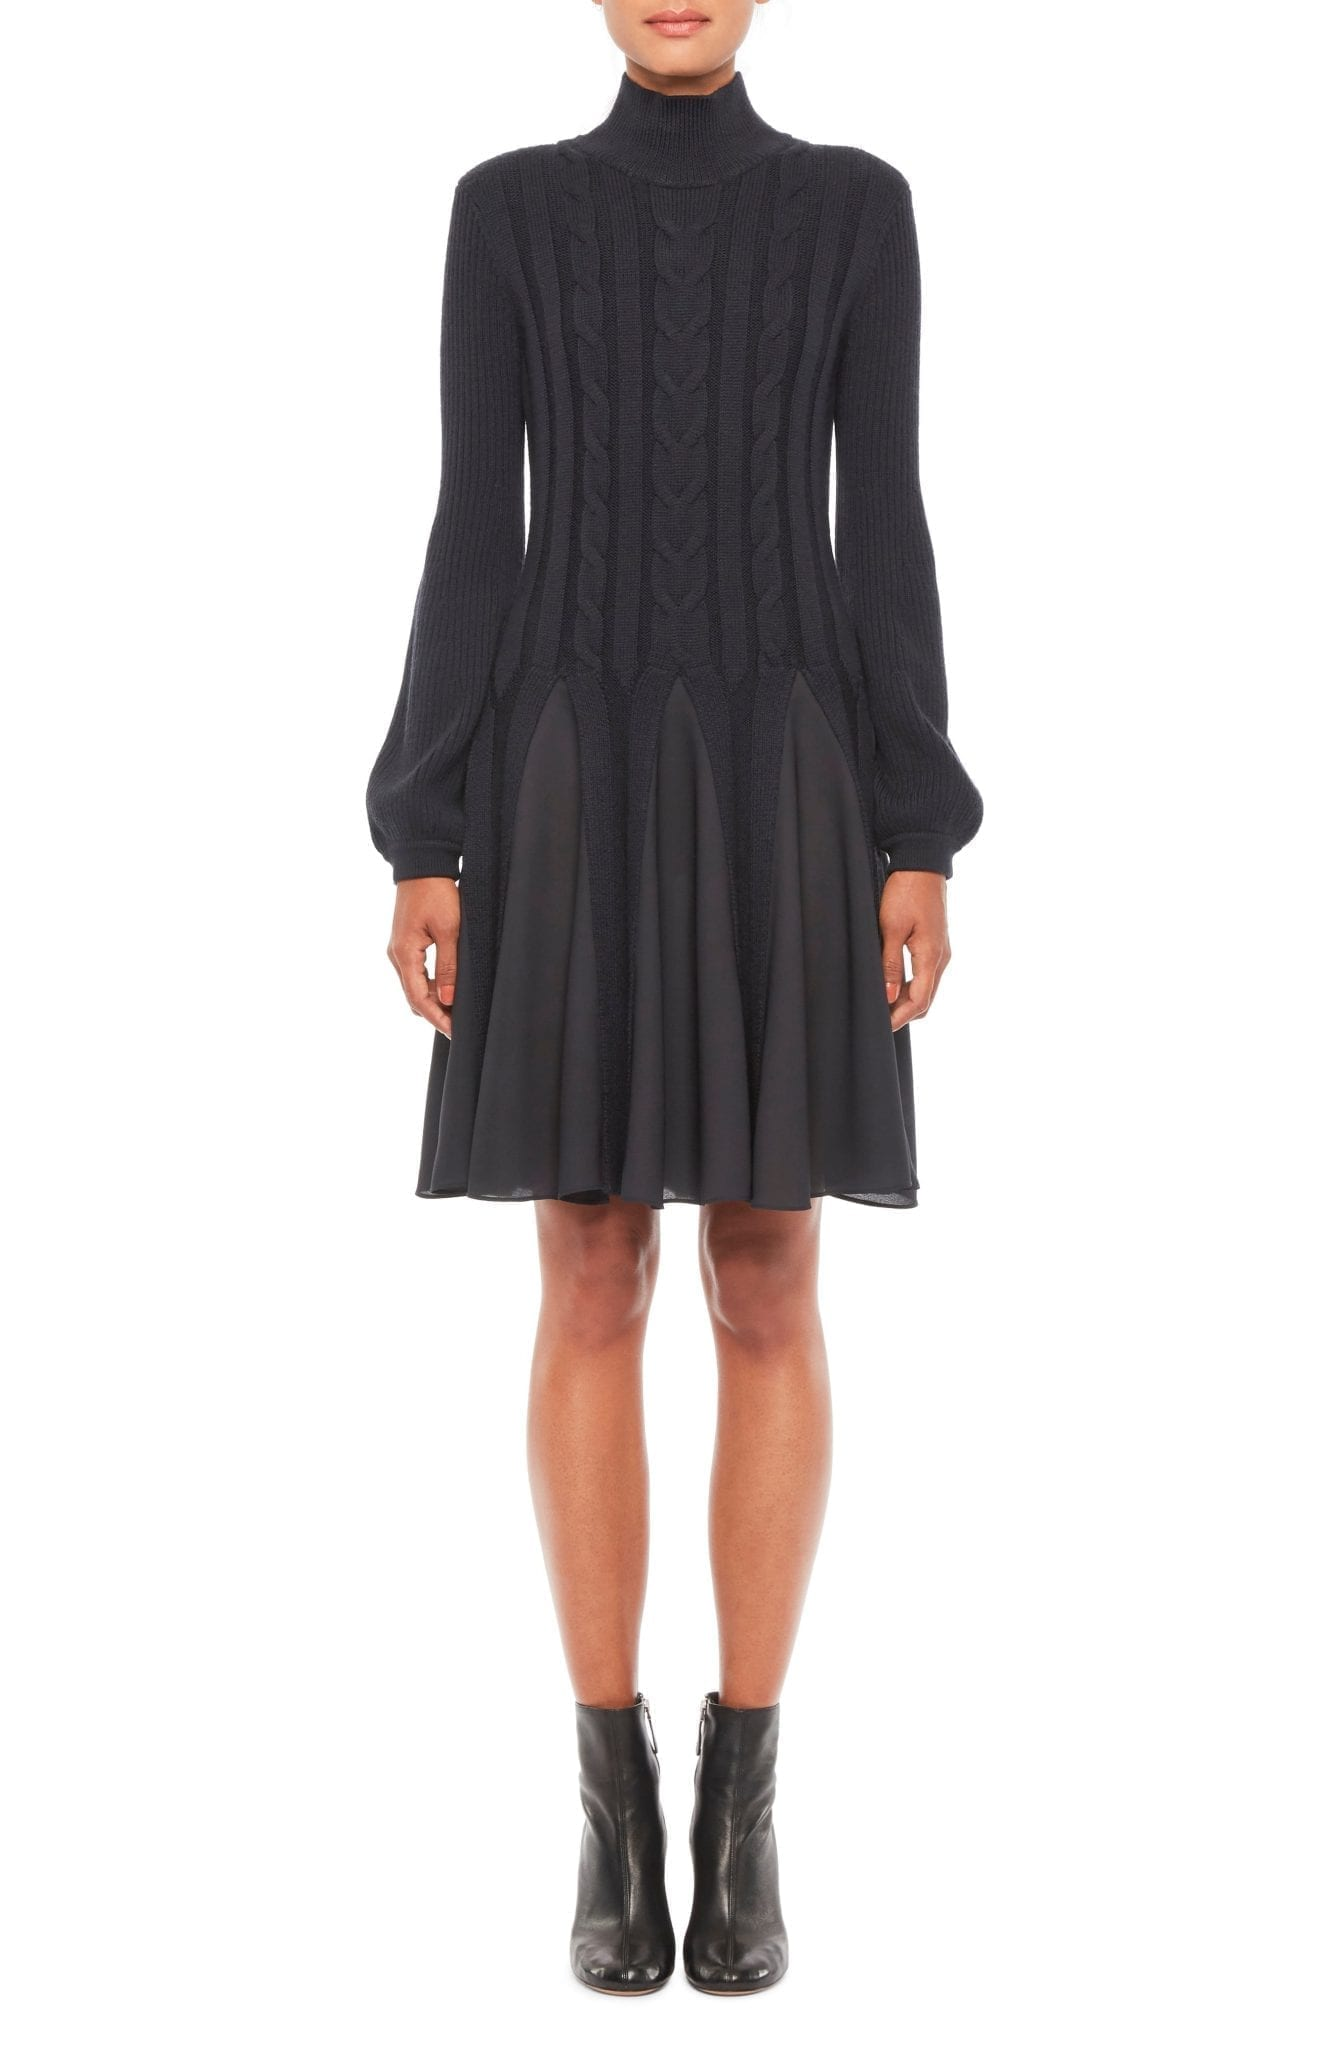 EMPORIO ARMANI Mix Media Fit & Flare Sweater Dress